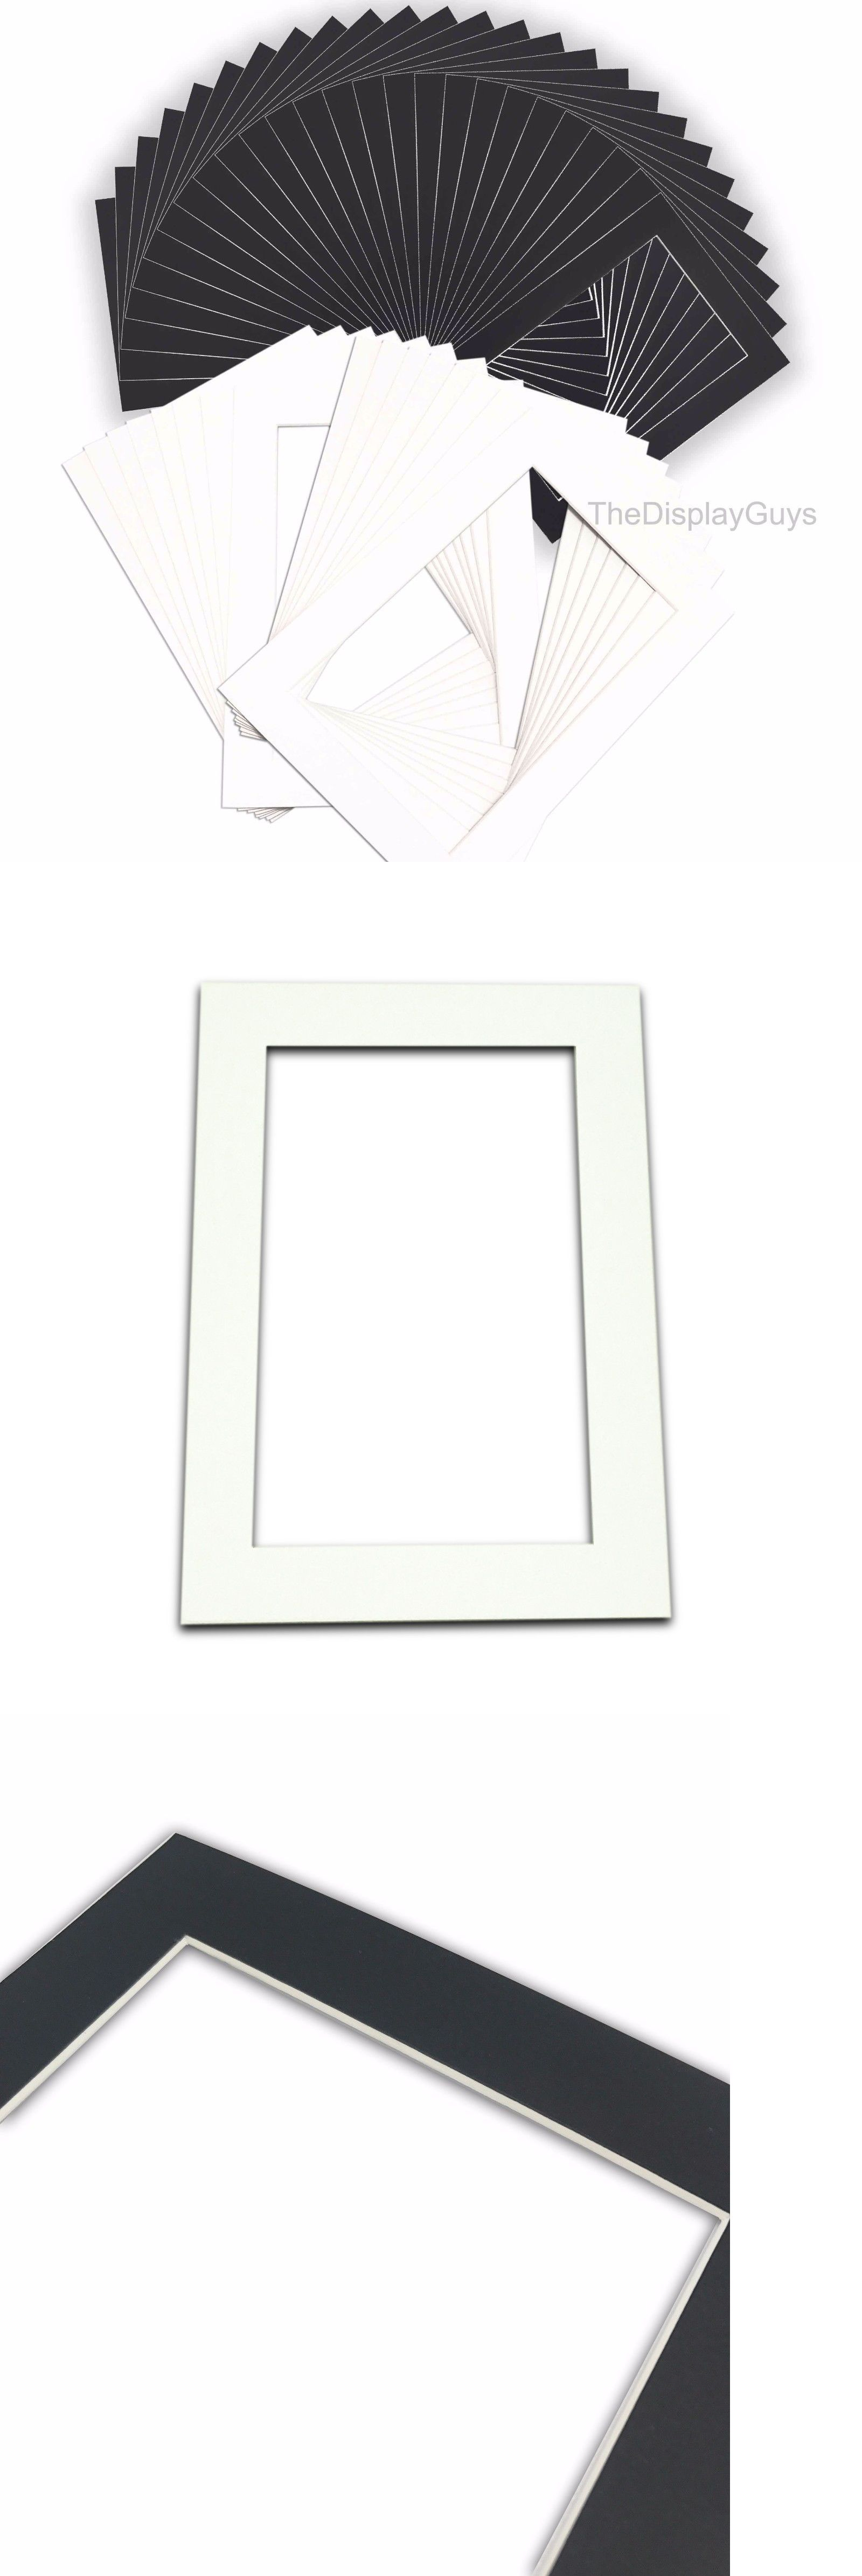 Framing Mats 37576 25pcs Black White Mat Matting Board 8x10 11x14 Inch For Art Picture Photo Frame Buy It Now Only 21 99 On Art Pictures Picture Photo Frame